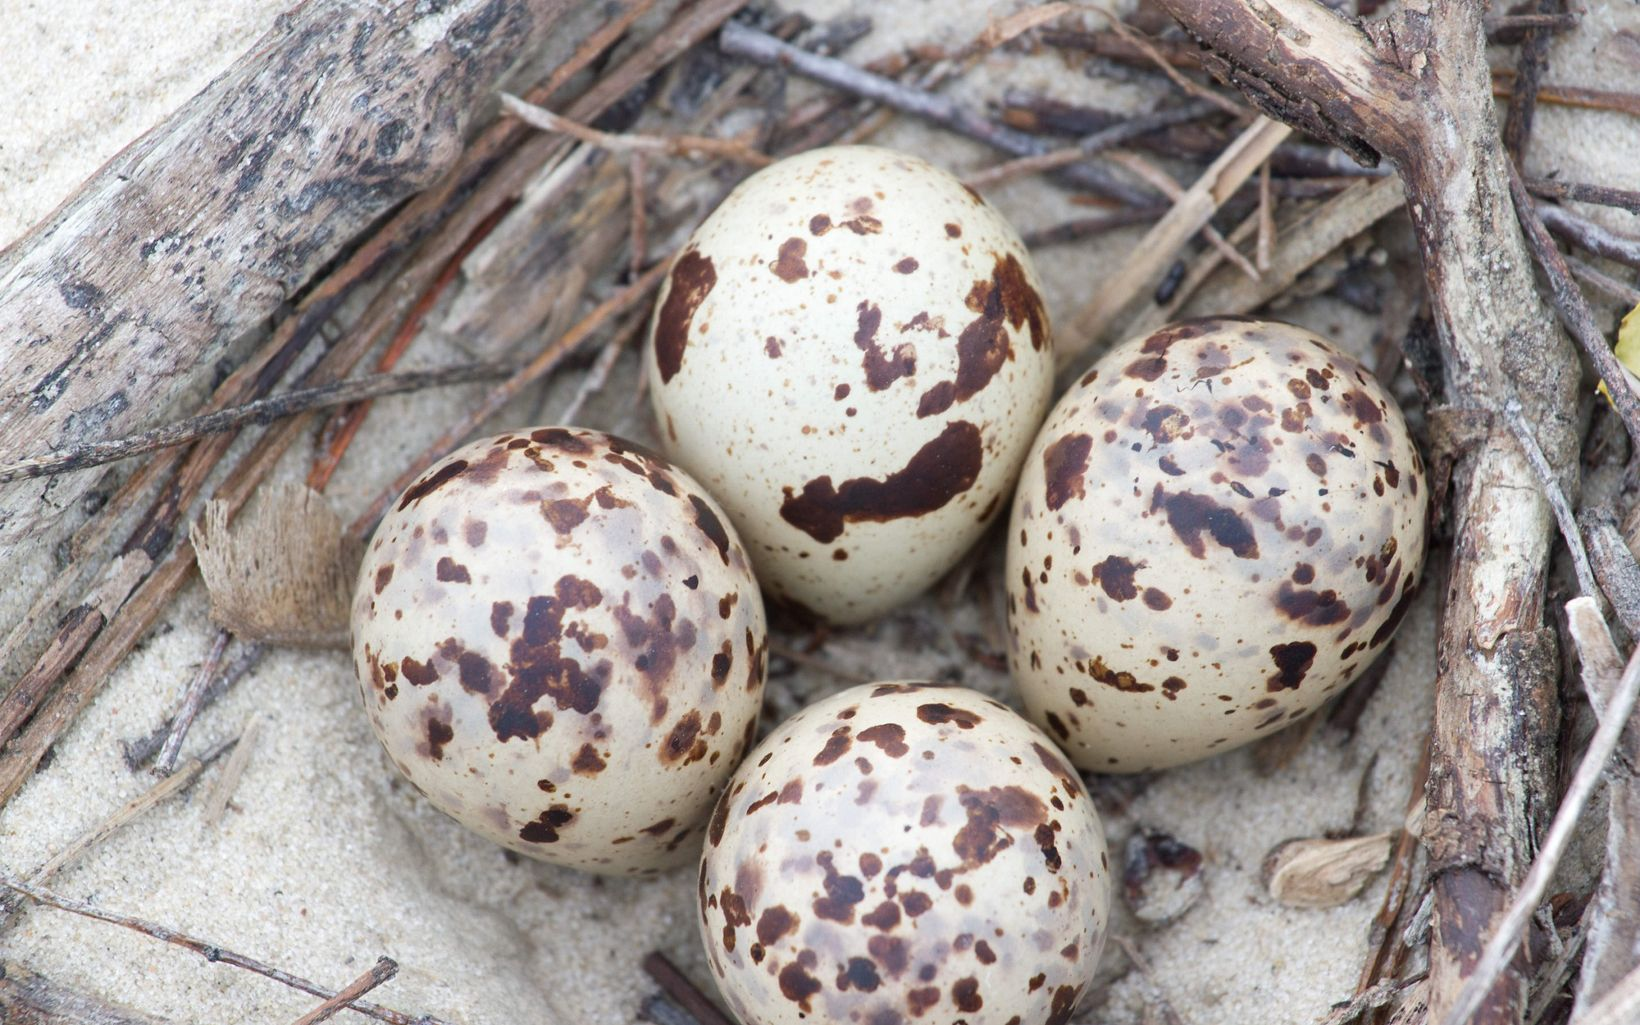 Beach-nesting birds like piping plovers and least terns build nests, called scrapes, in depressions in the sand.